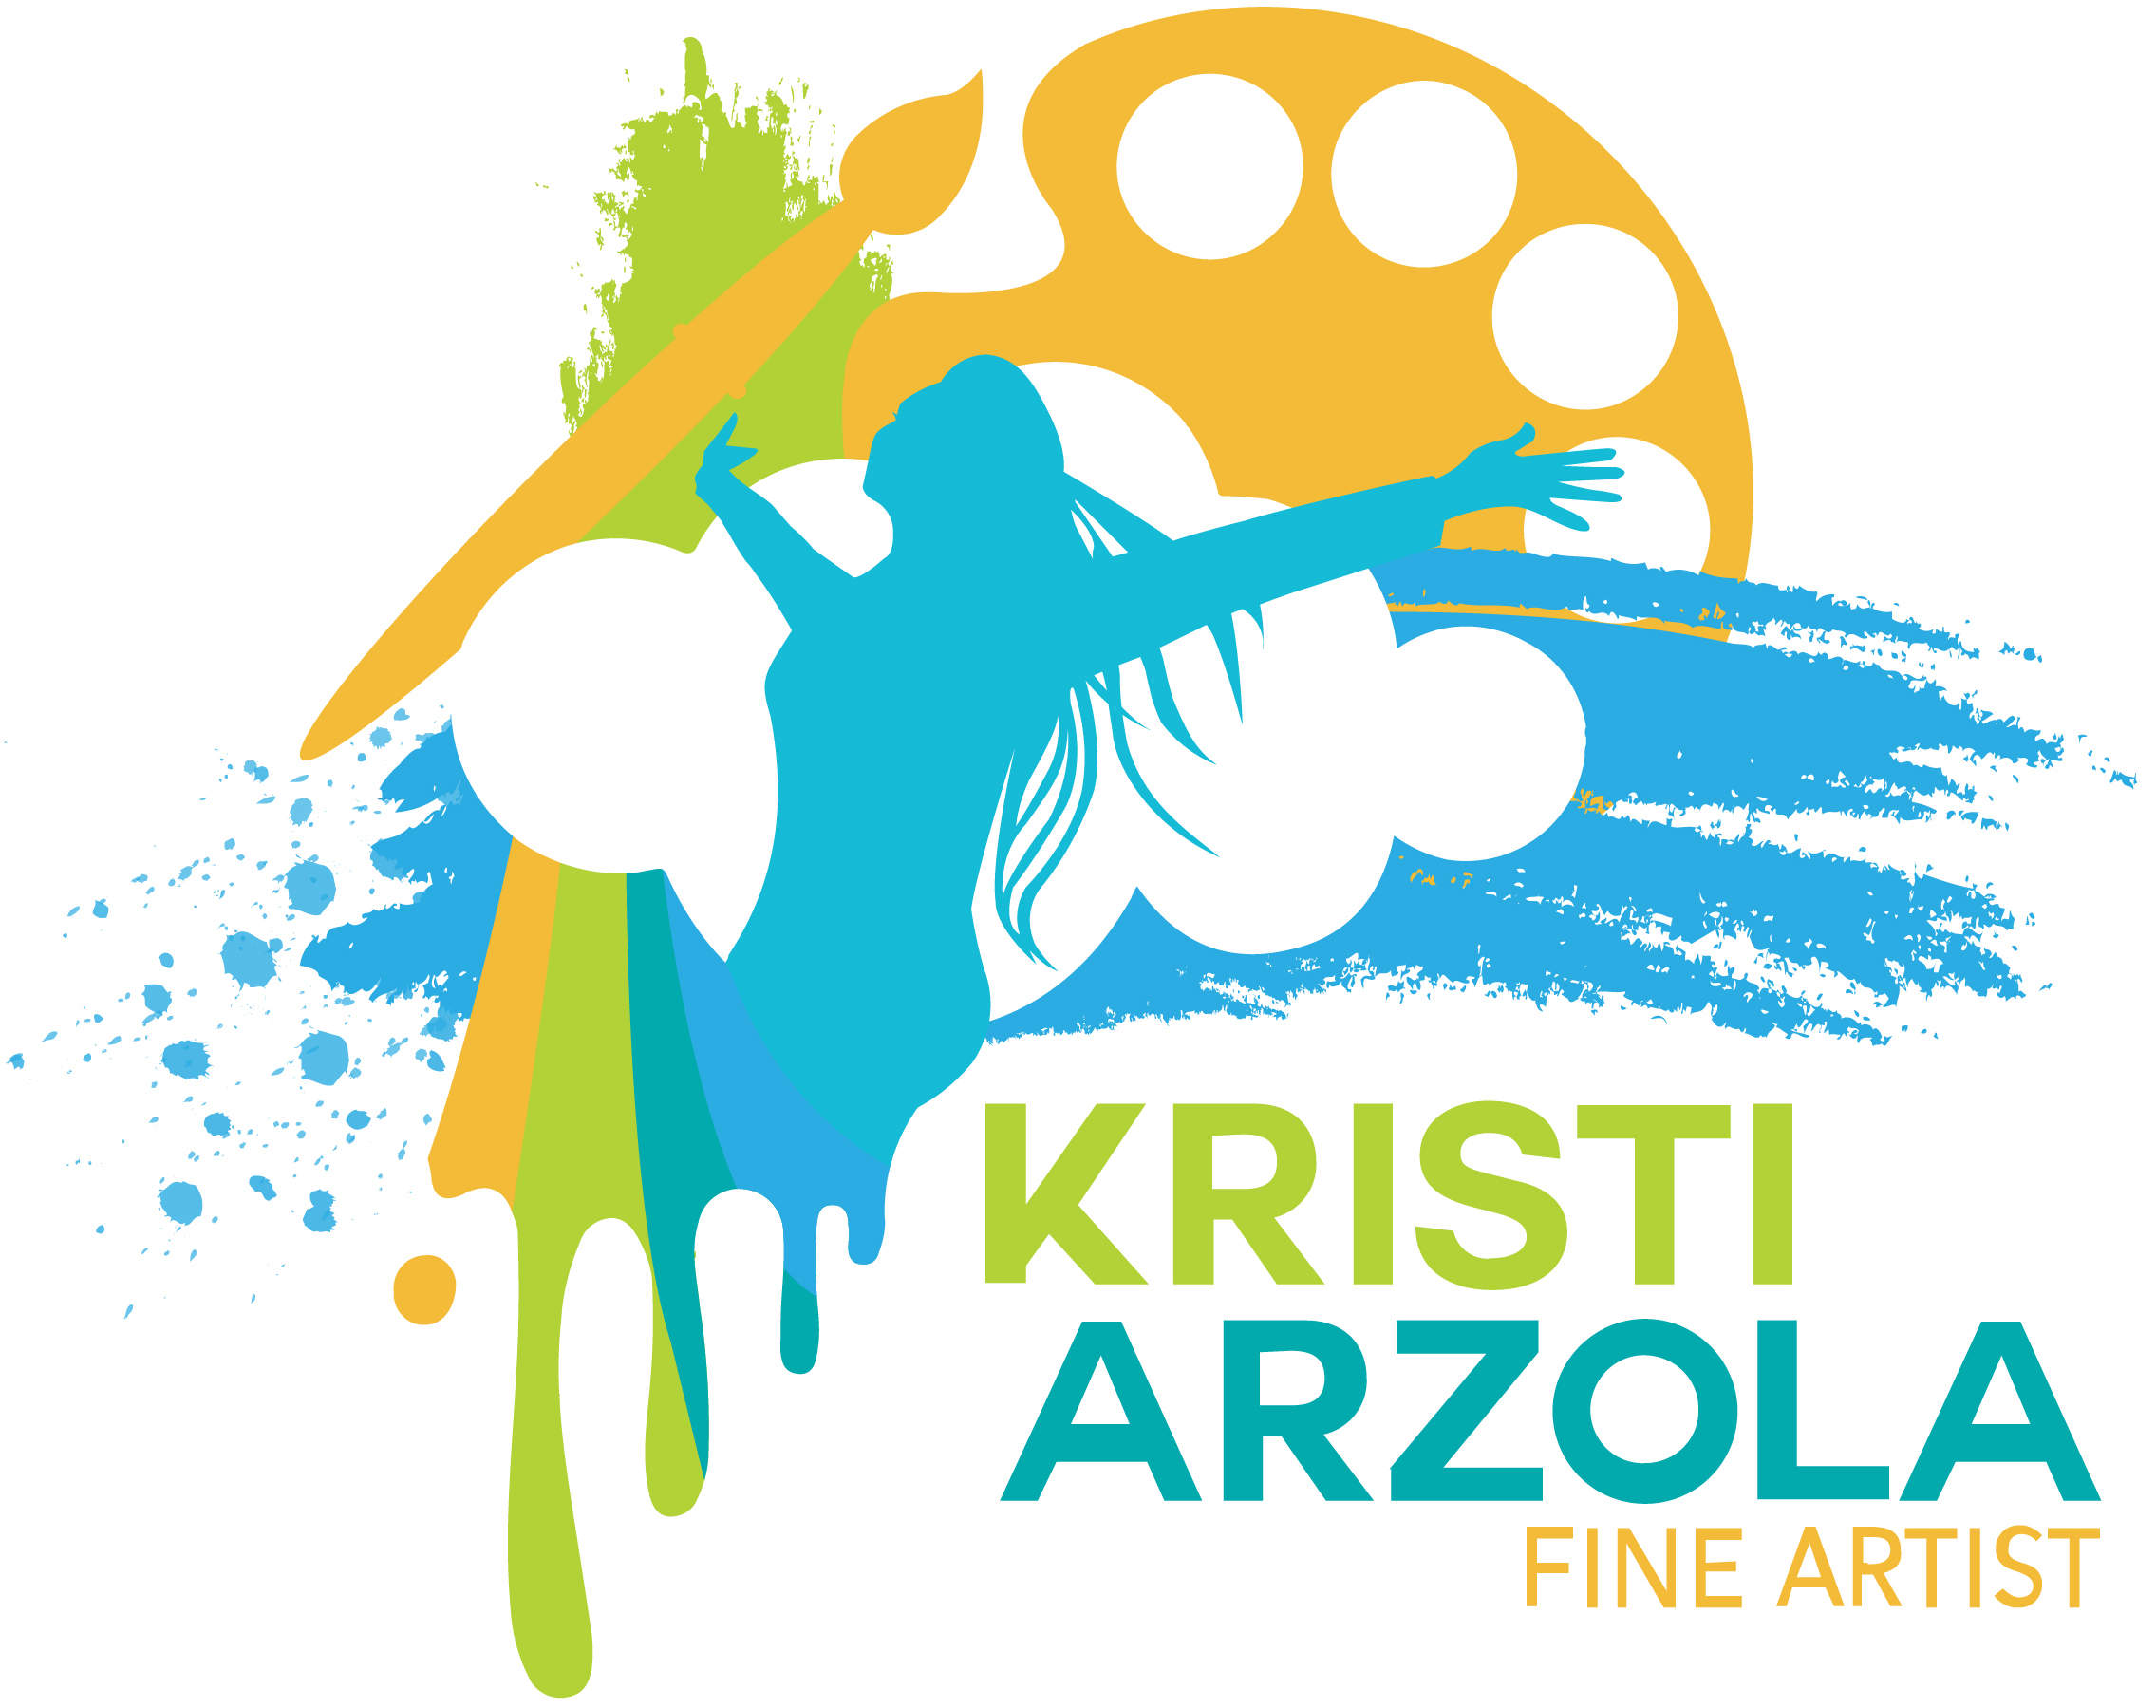 Fine Art by Kristi Arzola